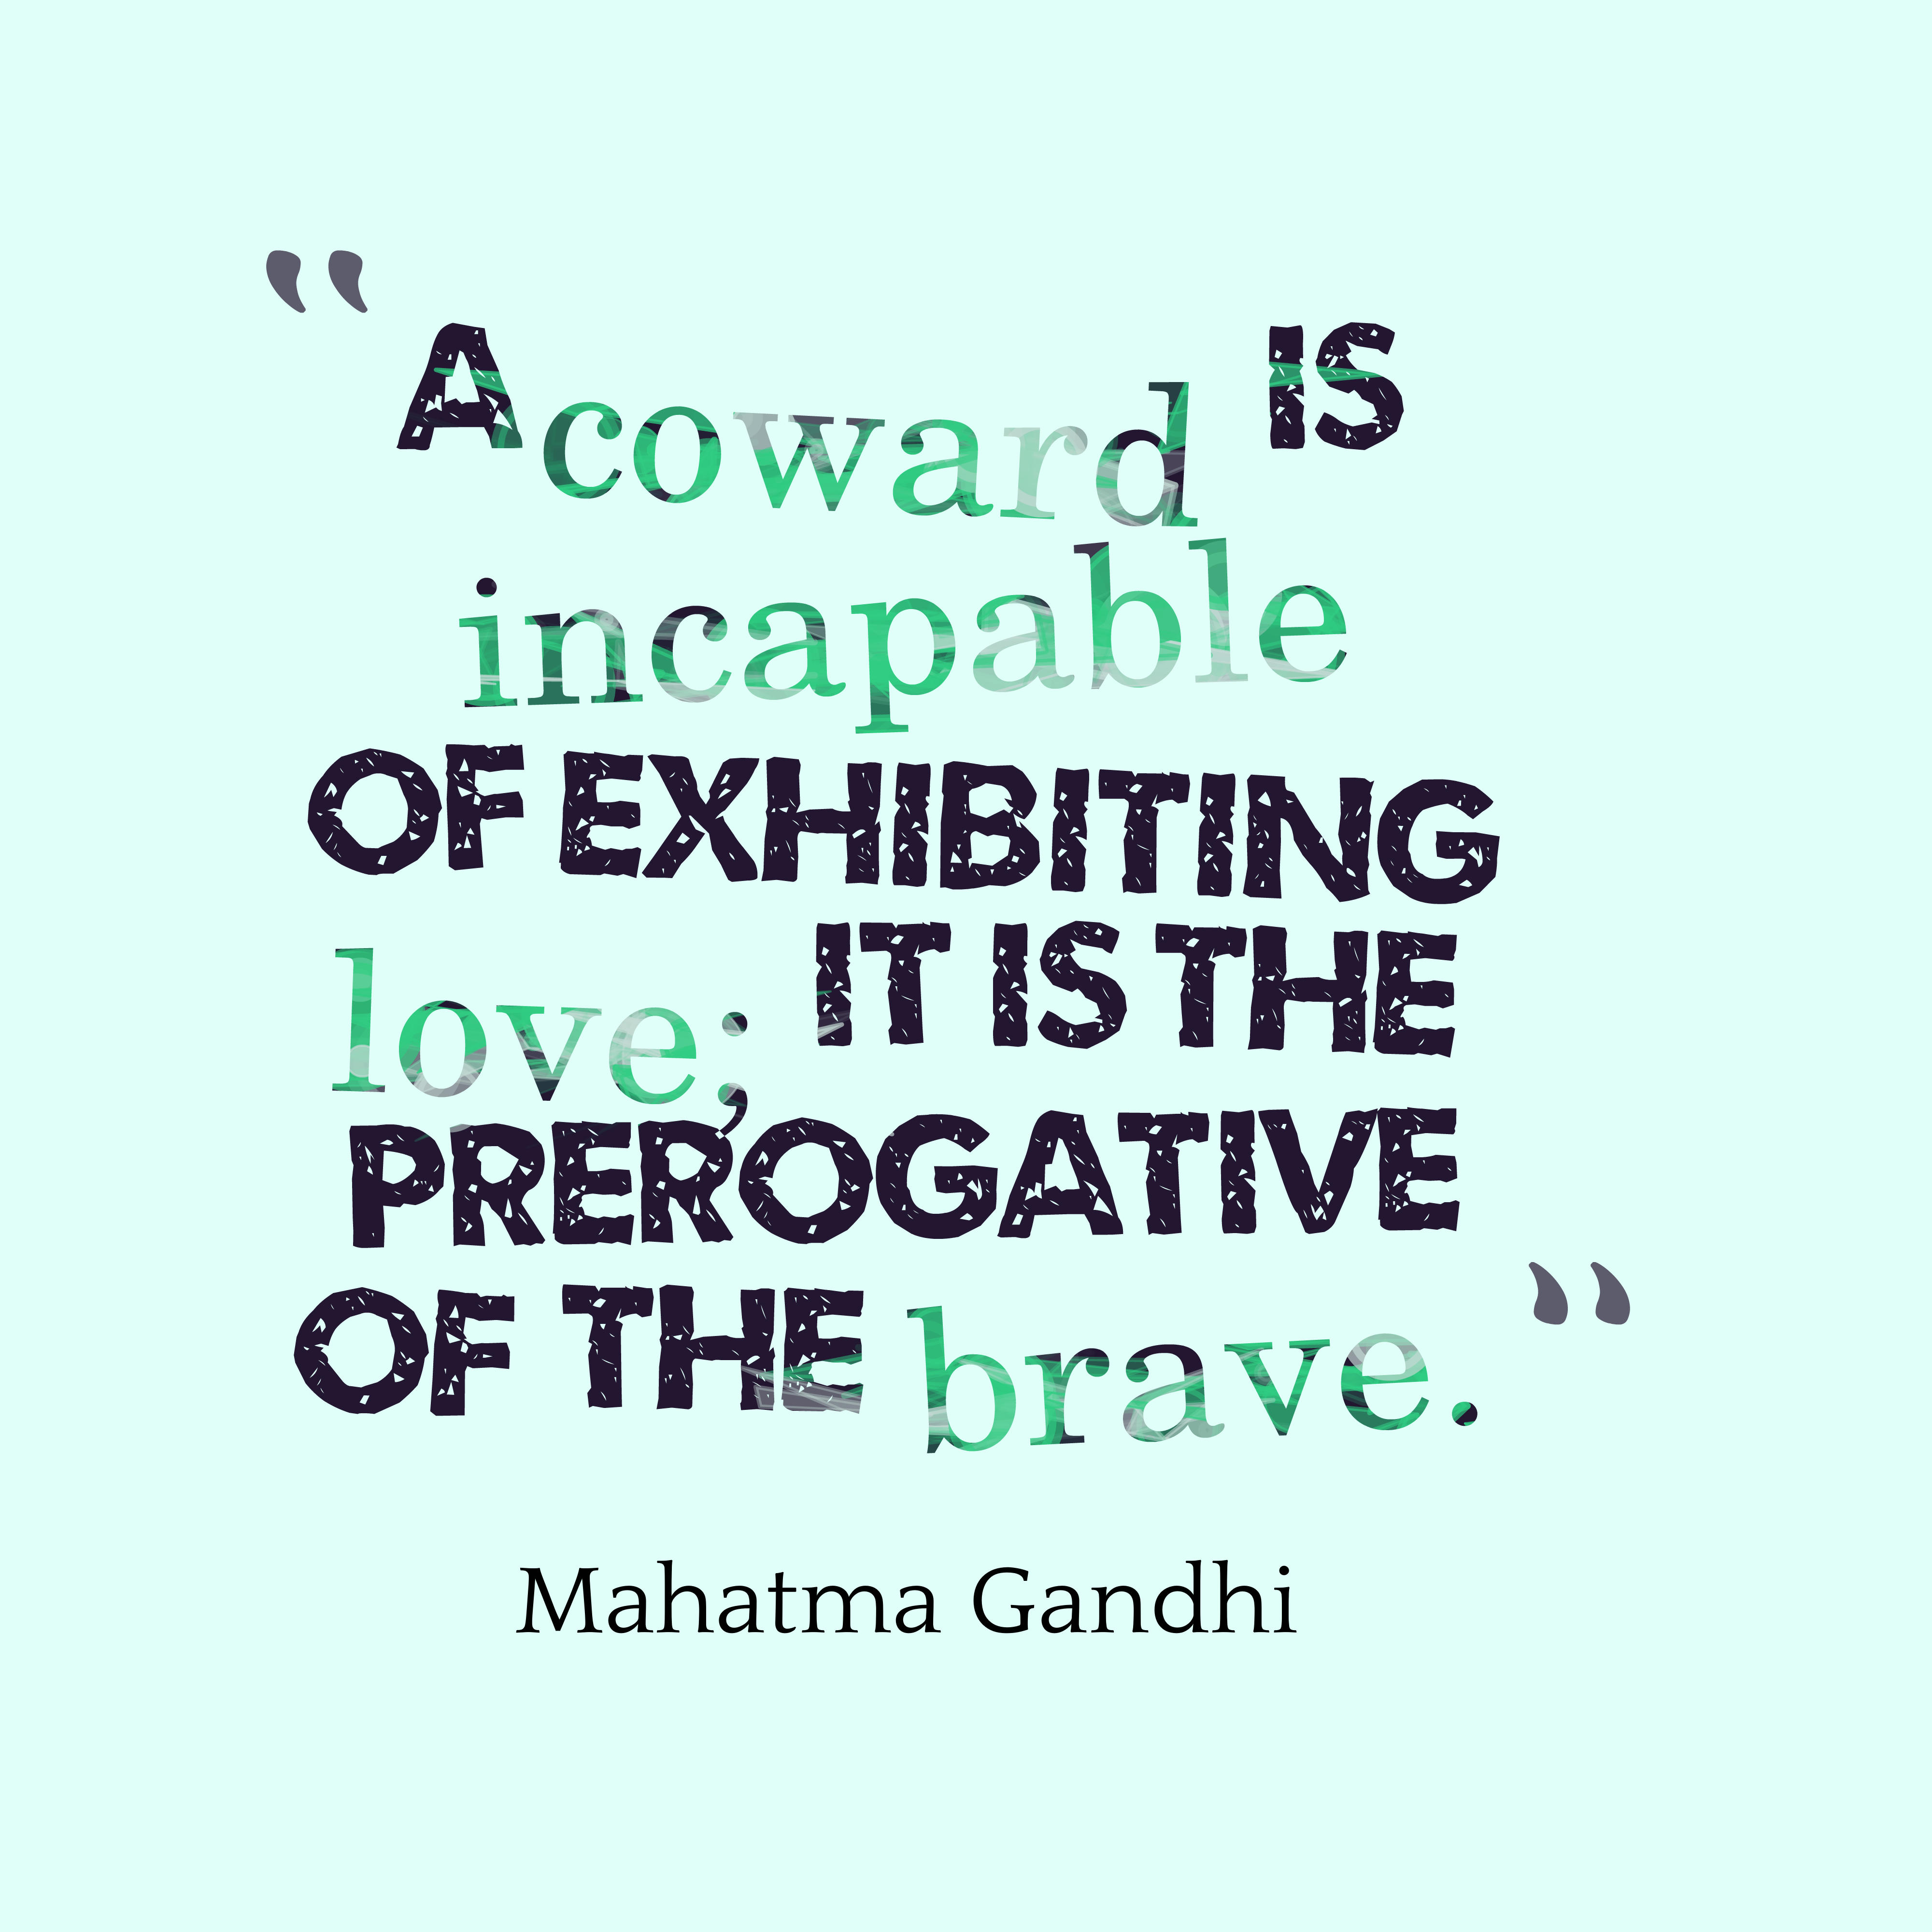 http://www.quotescover.com/wp-content/uploads/A-coward-is-incapable-of__quotes-by-Mahatma-Gandhi-10.png